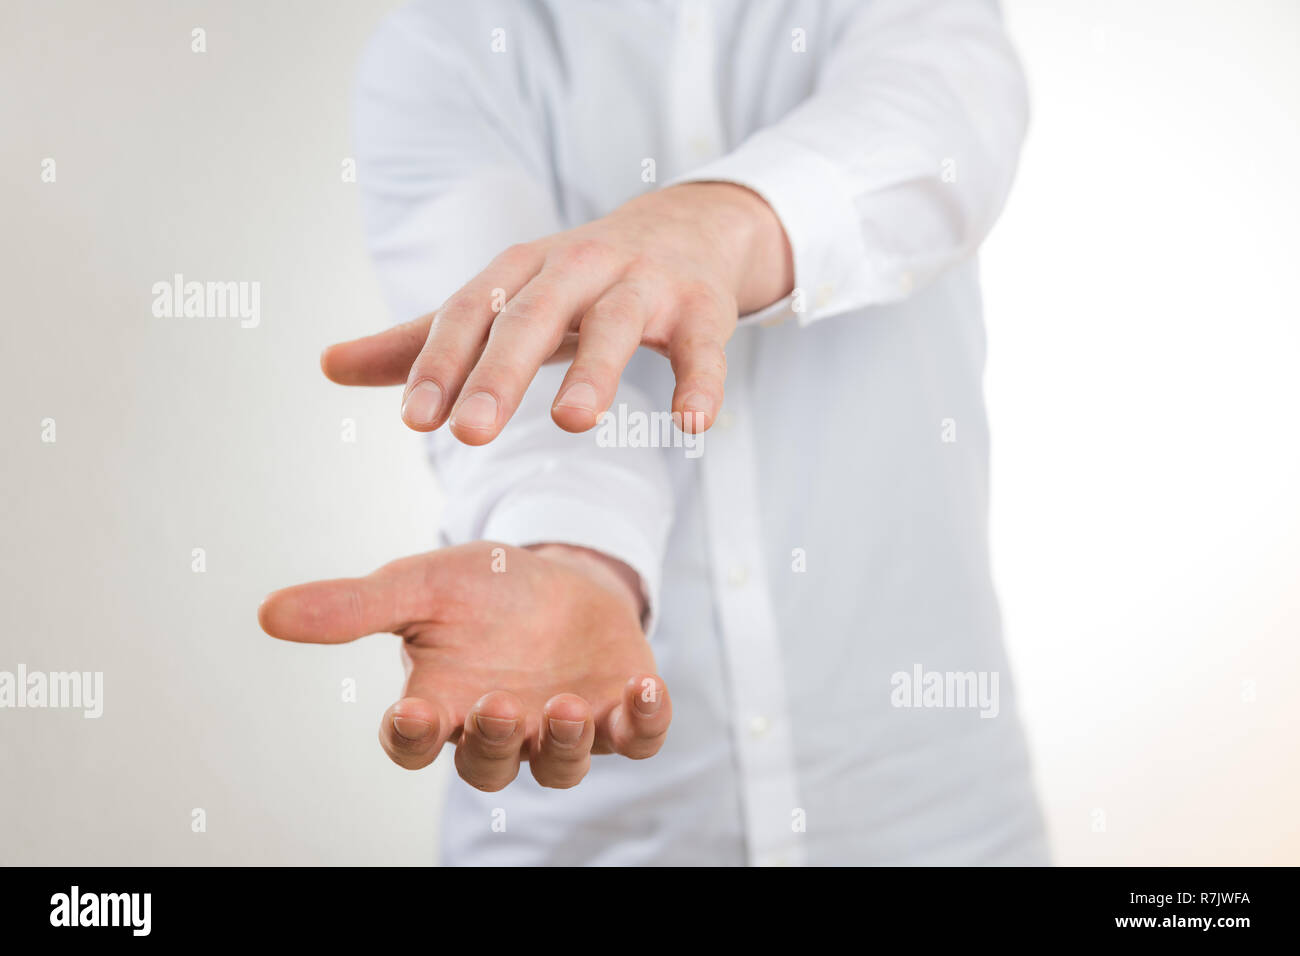 man with white shirt stretching out empty hand against white background - Stock Image